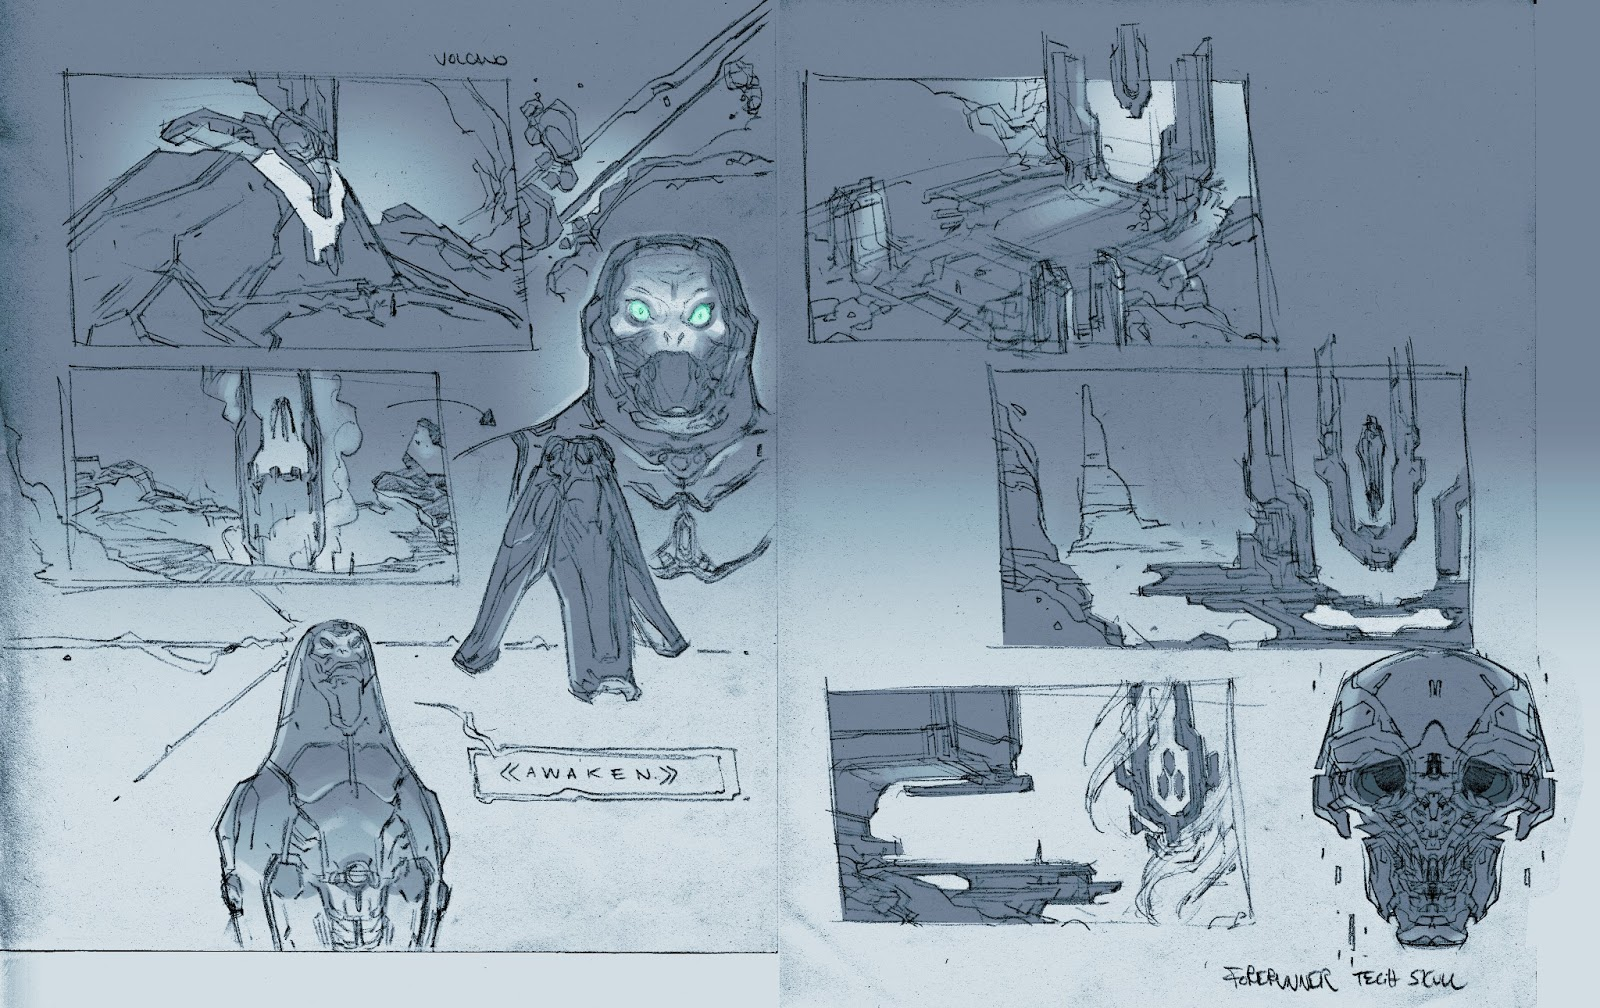 Halo 4 Concept Art By Paul Richards Featuring Space Whales